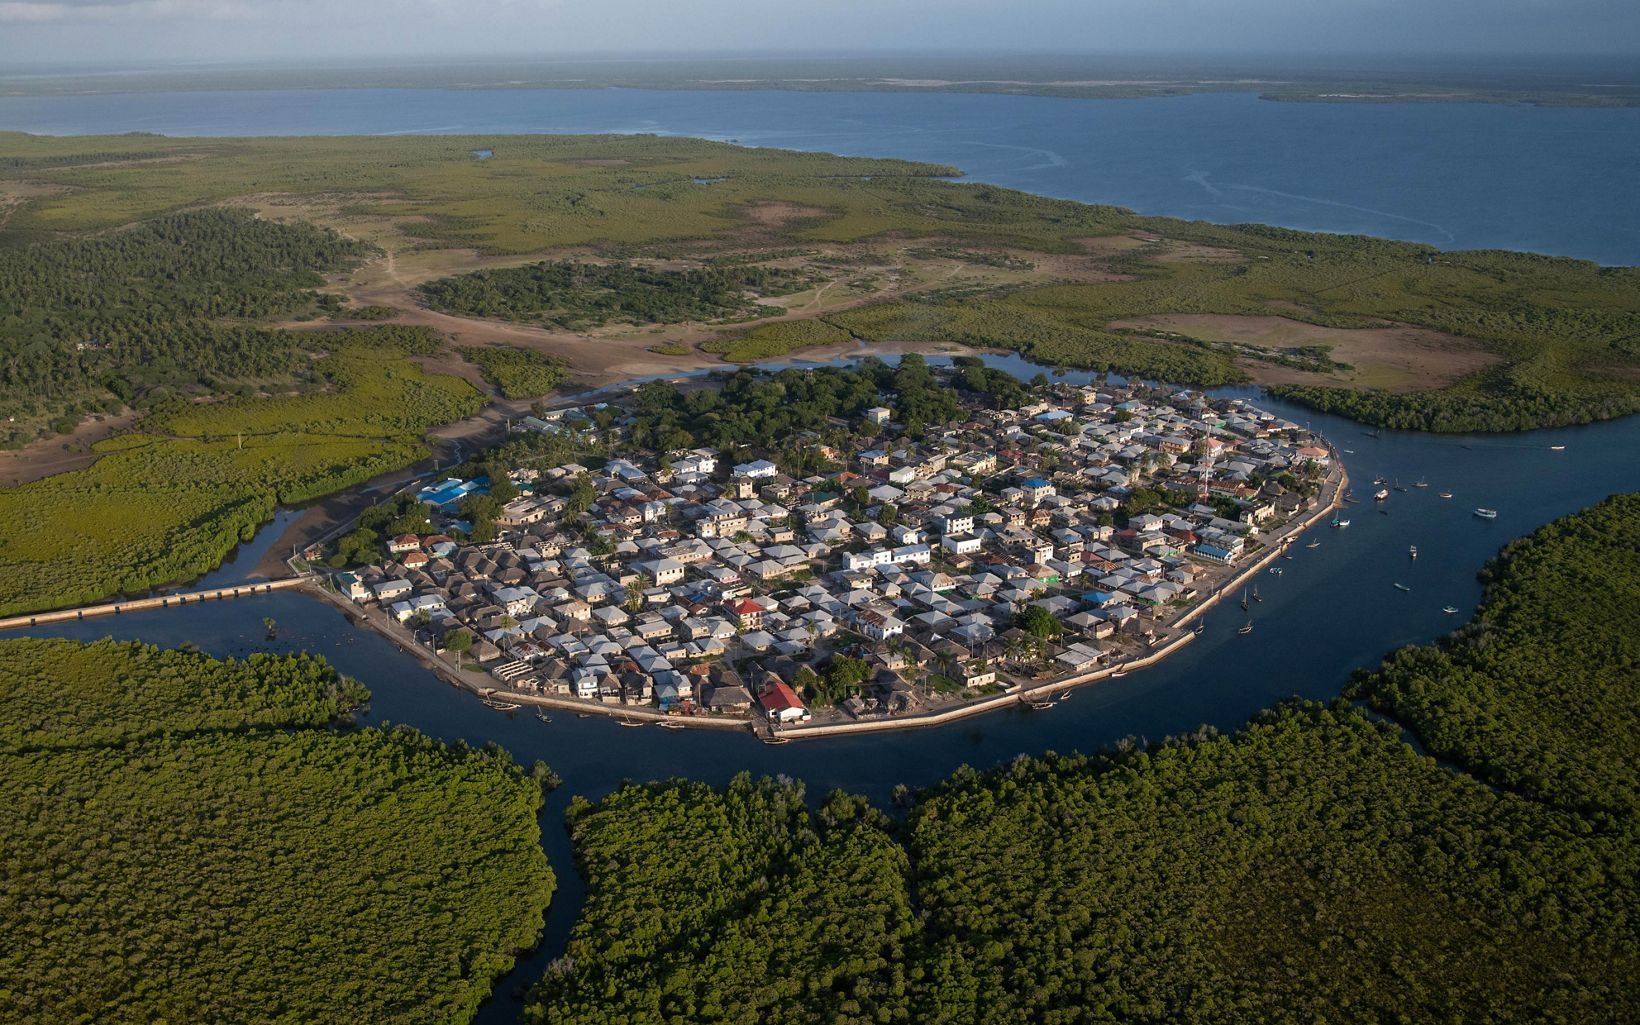 An aerial view of one of the villages on Pate Island, Lamu County, Kenya.